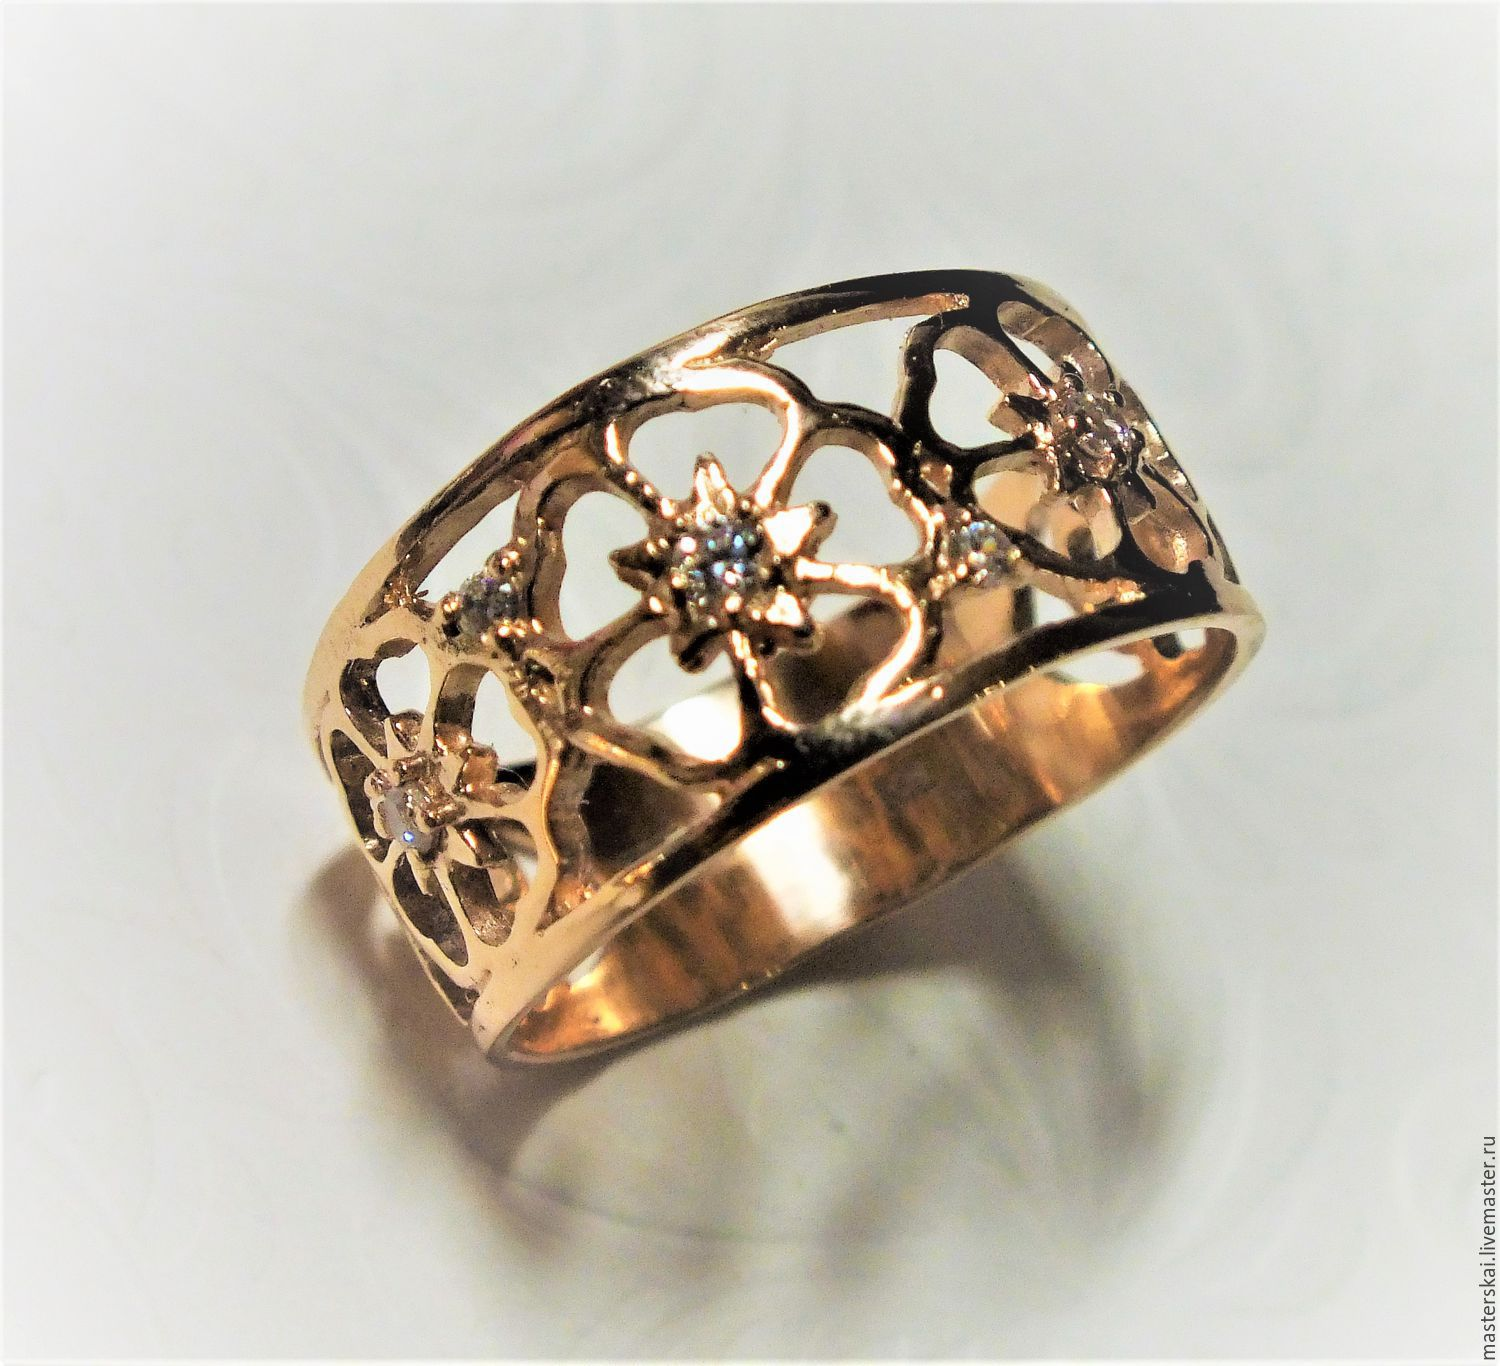 Ring 'Flowers'-gold 585, Rings, Moscow,  Фото №1